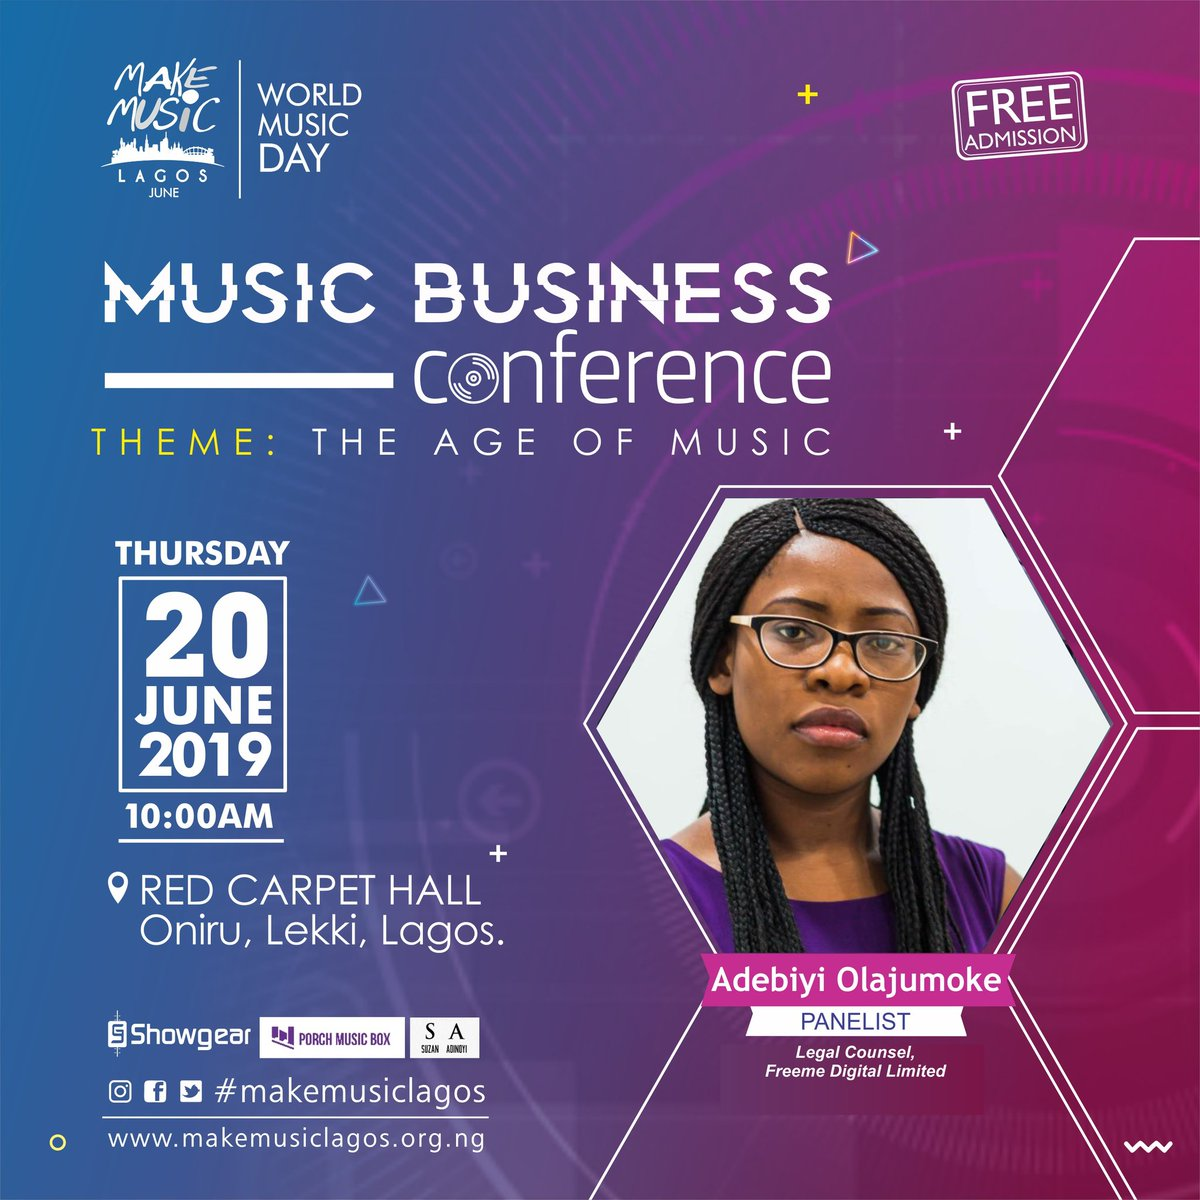 My girl's gonna be dropping her two cents on music business and the law. Ya'll show up, let's share a thing or two!  @MakeMusicLagos  #MakeMusicLagos<br>http://pic.twitter.com/oDKjzfWV9H